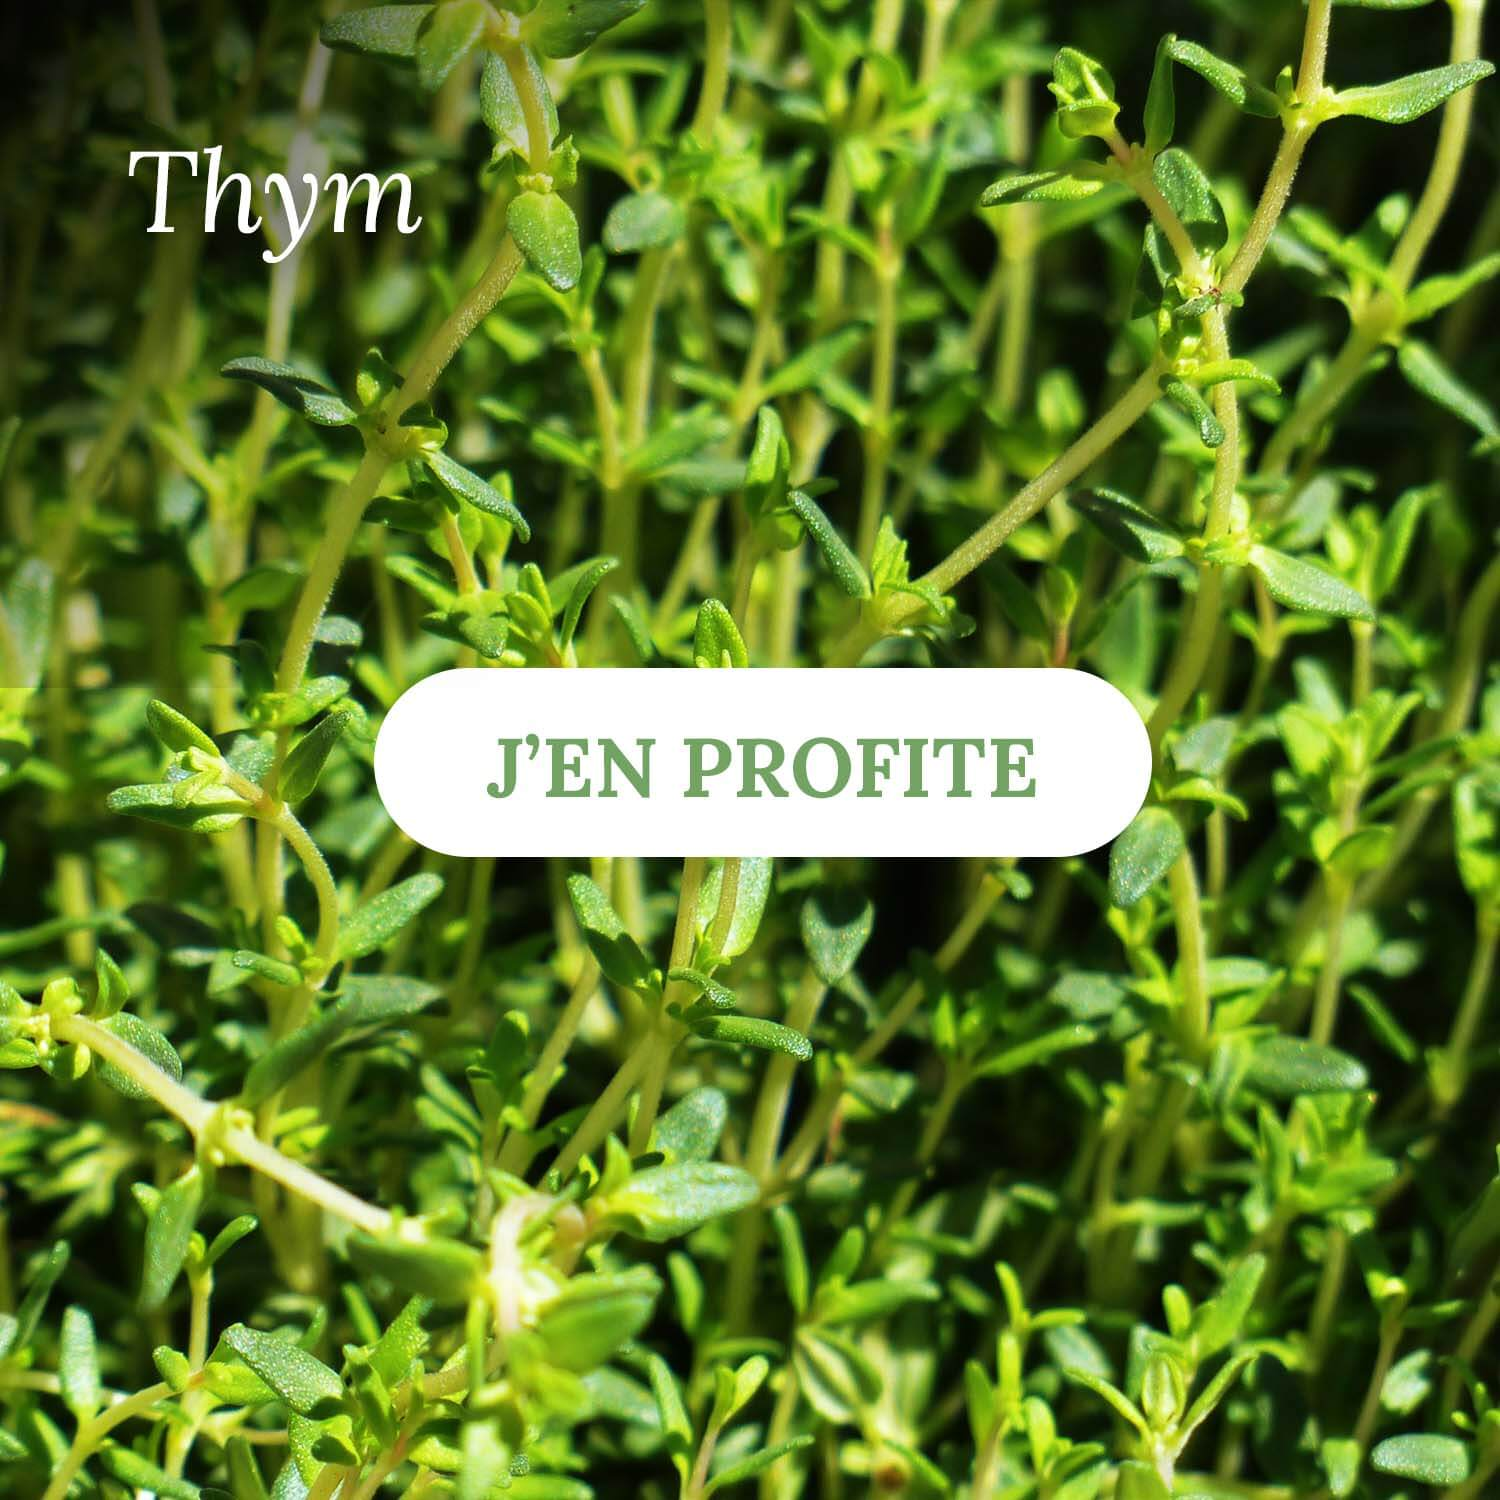 Thym - Vente d'herbes aromatiques